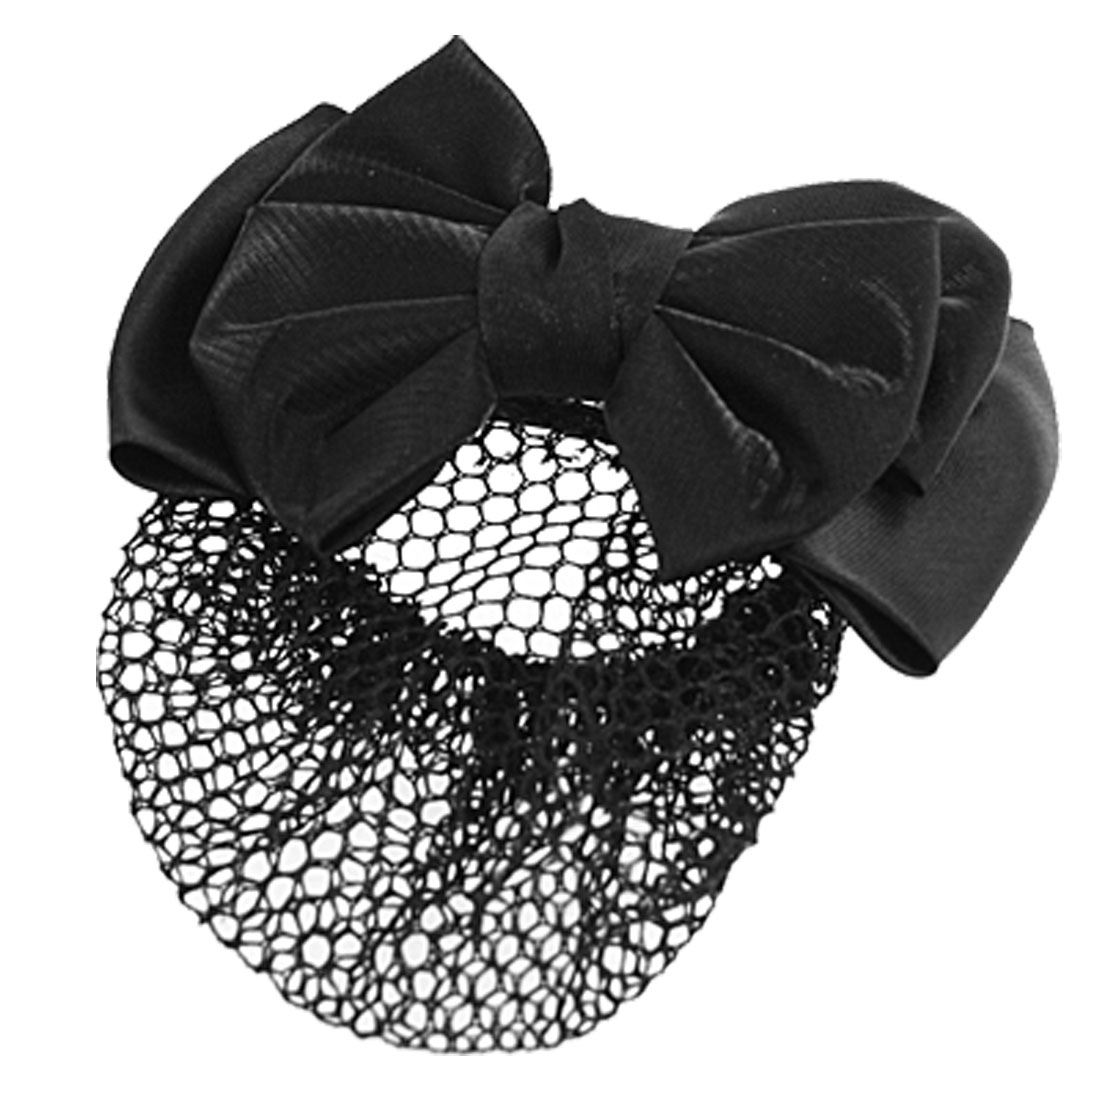 Women Polyester Bowknot Shape Barrette Hair Bun Cover Clip Snood Hairnet Black